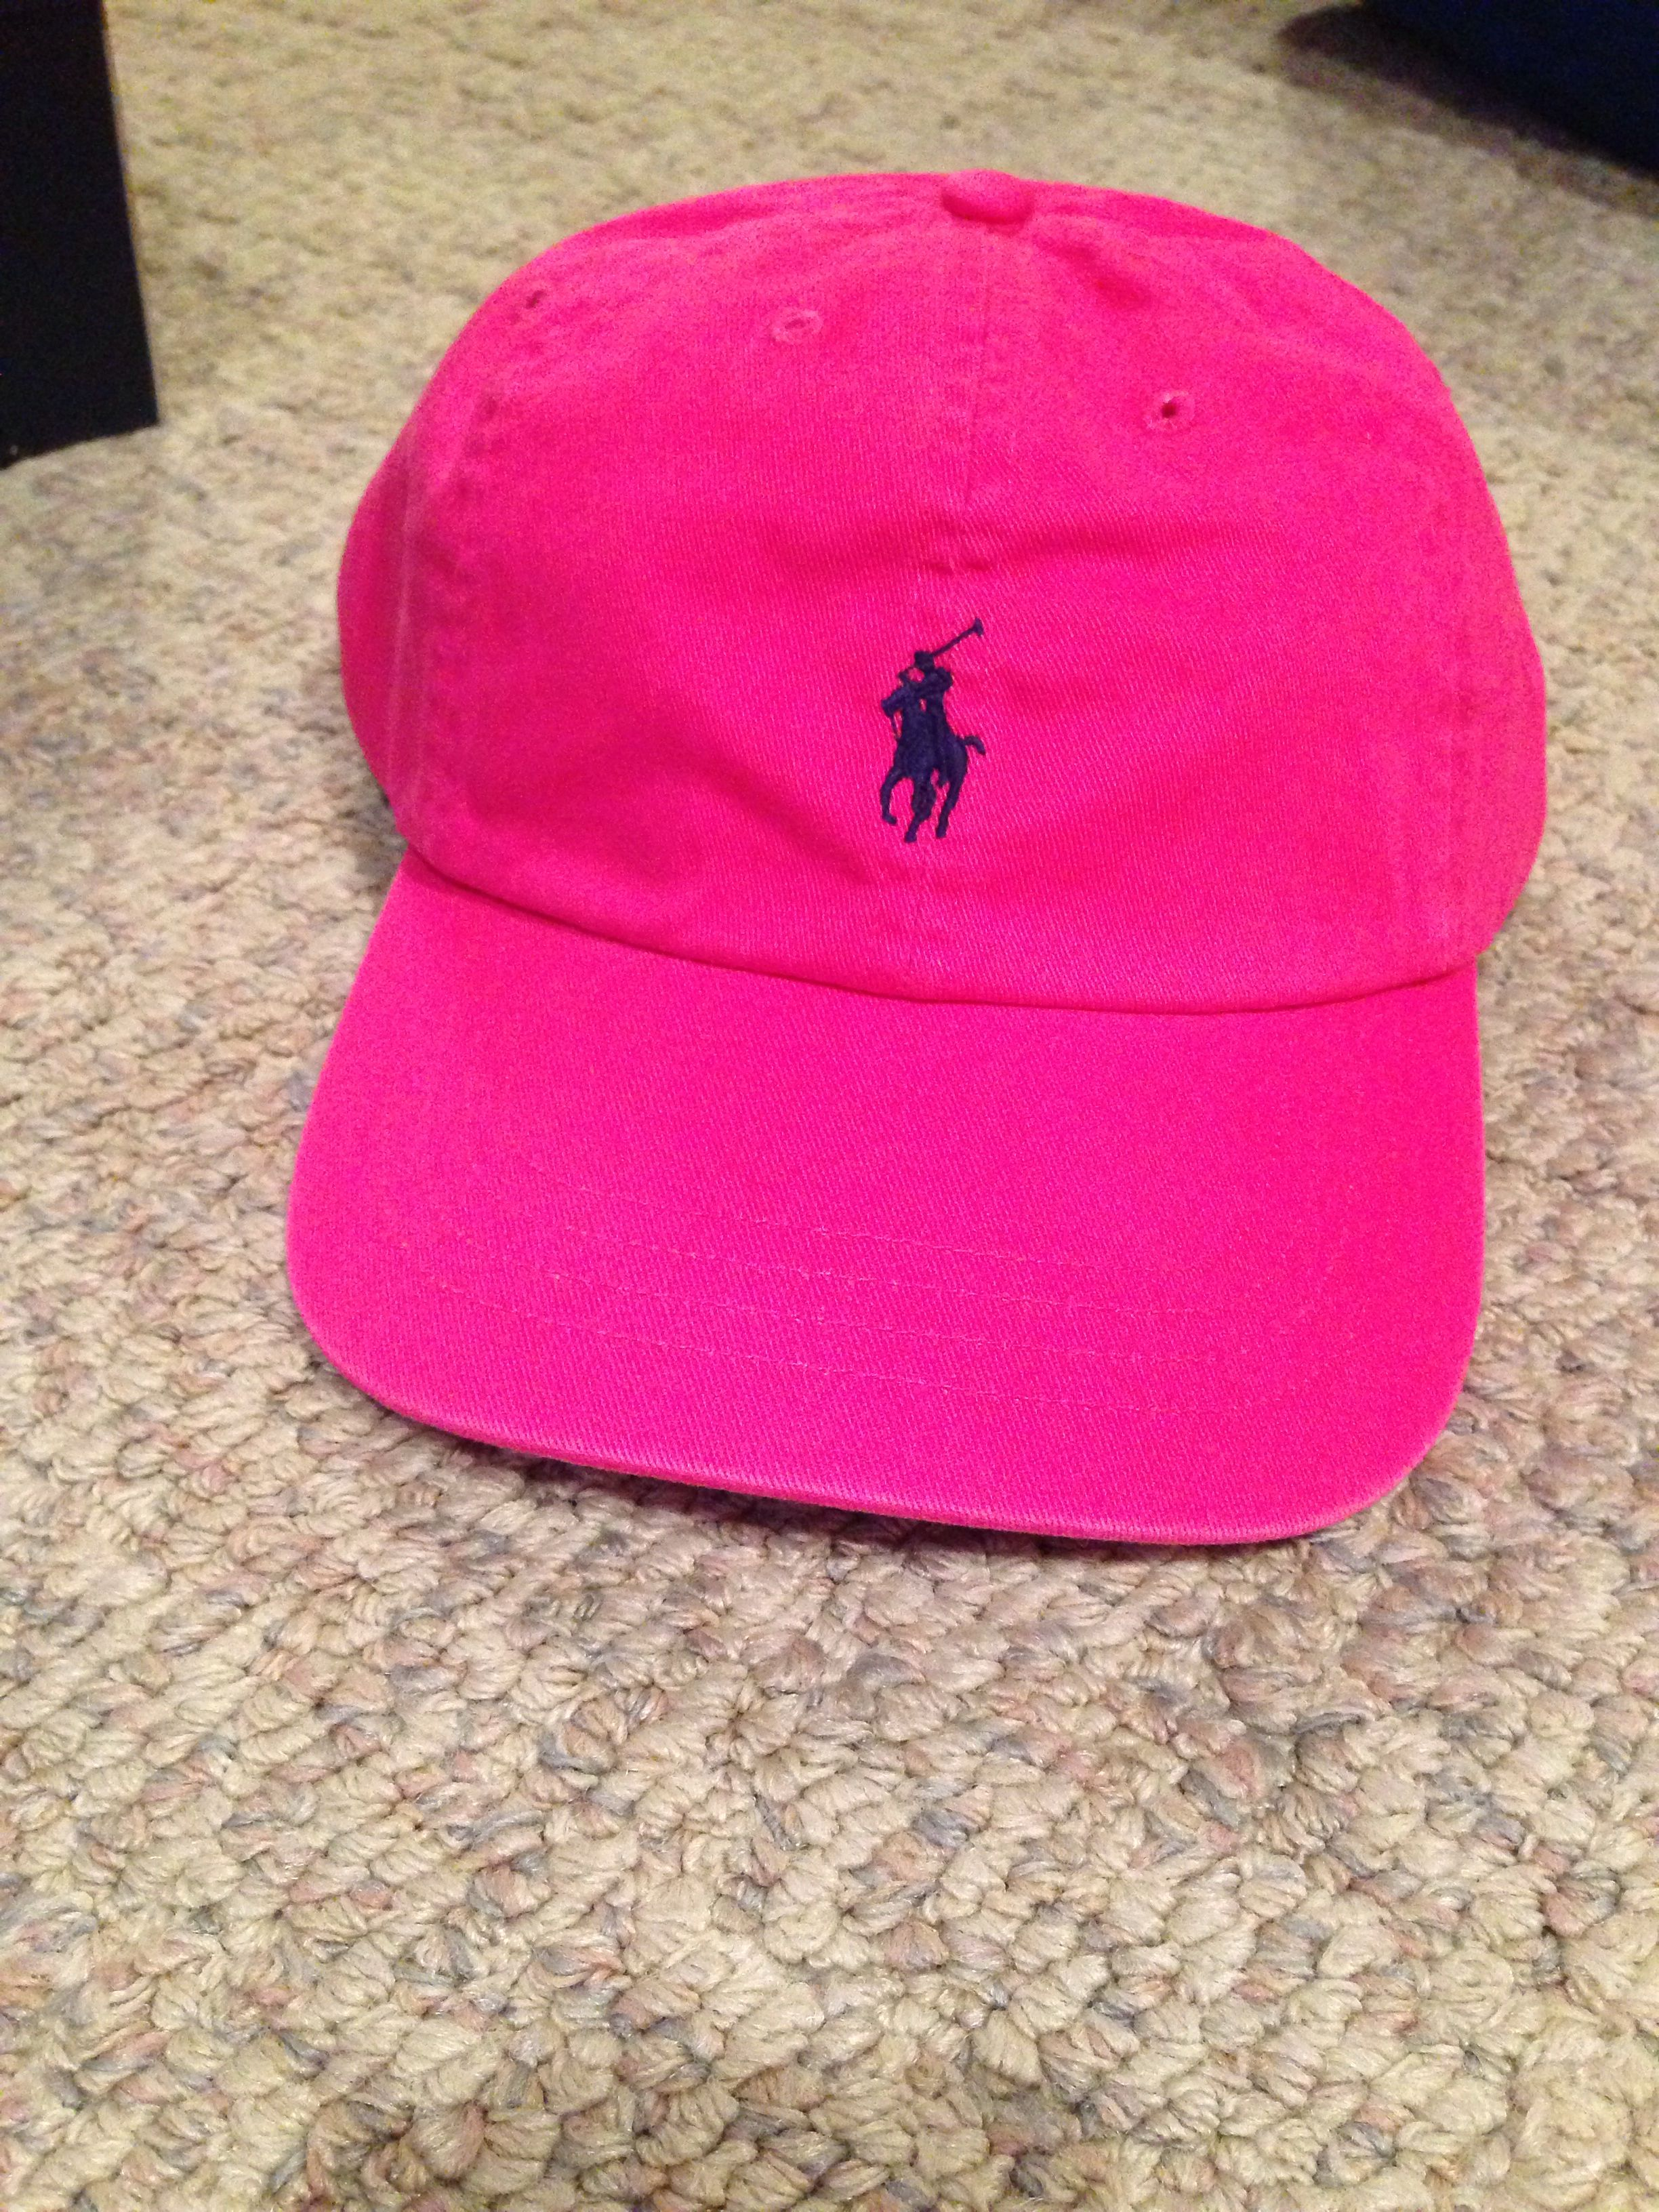 Hot pink polo hat  70a035d95c5